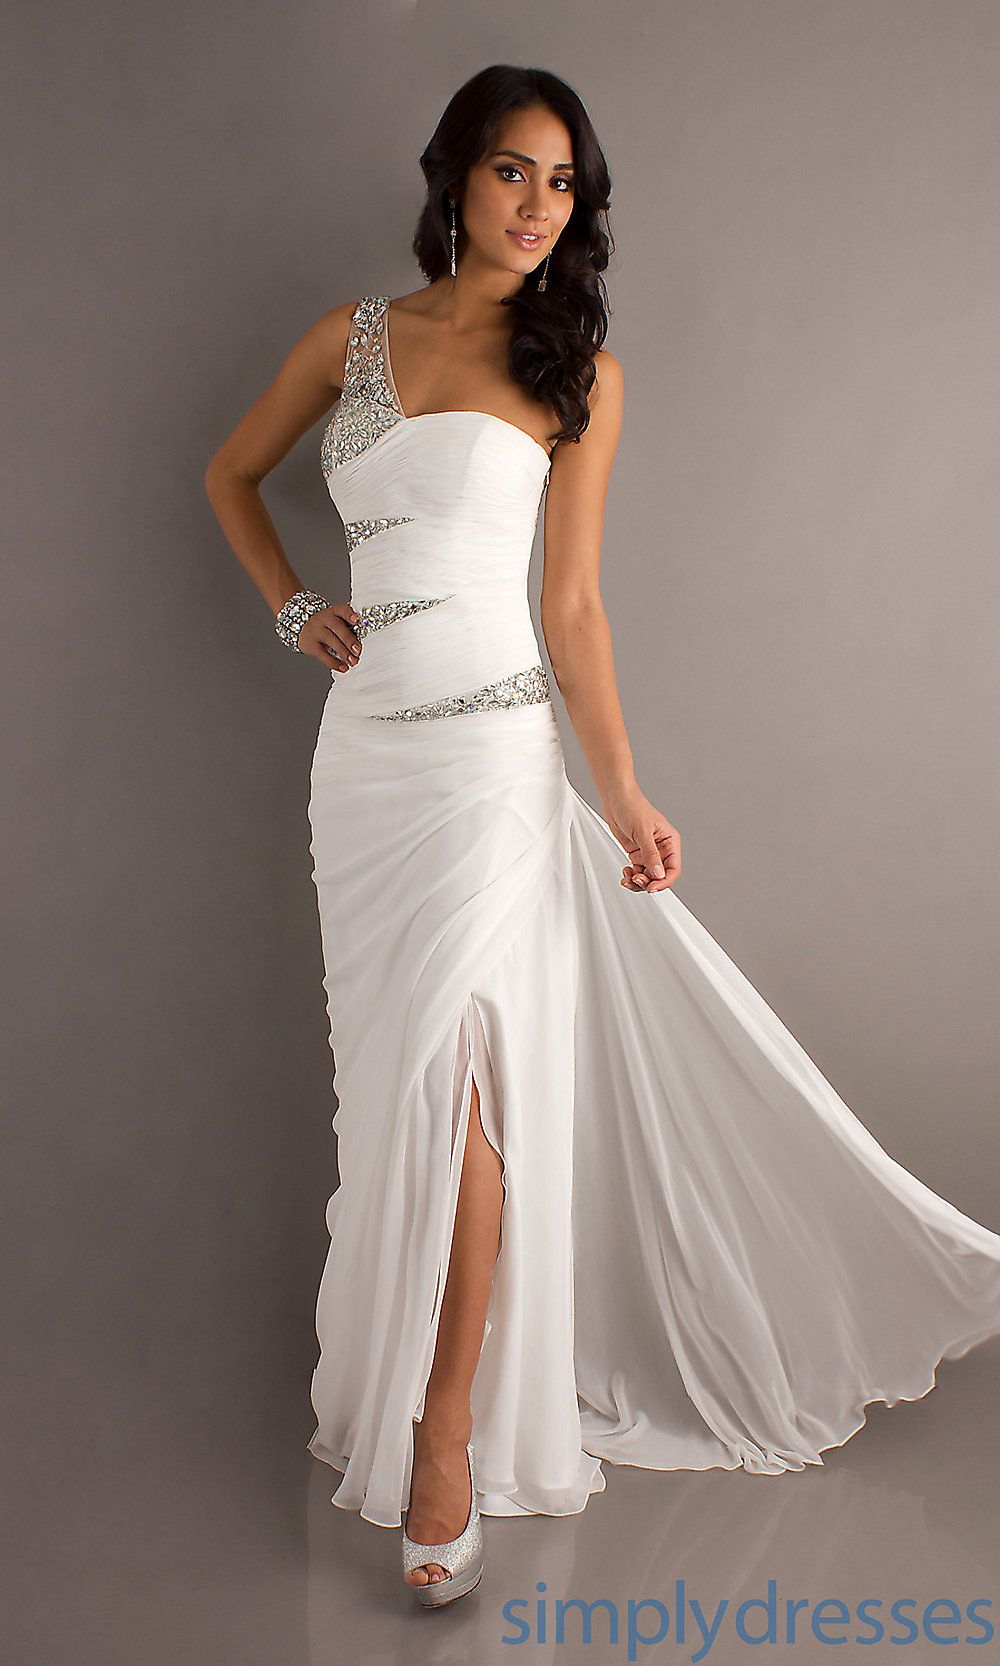 Wedding White Formal Gowns long one shoulder dress white formal simply dresses dresses